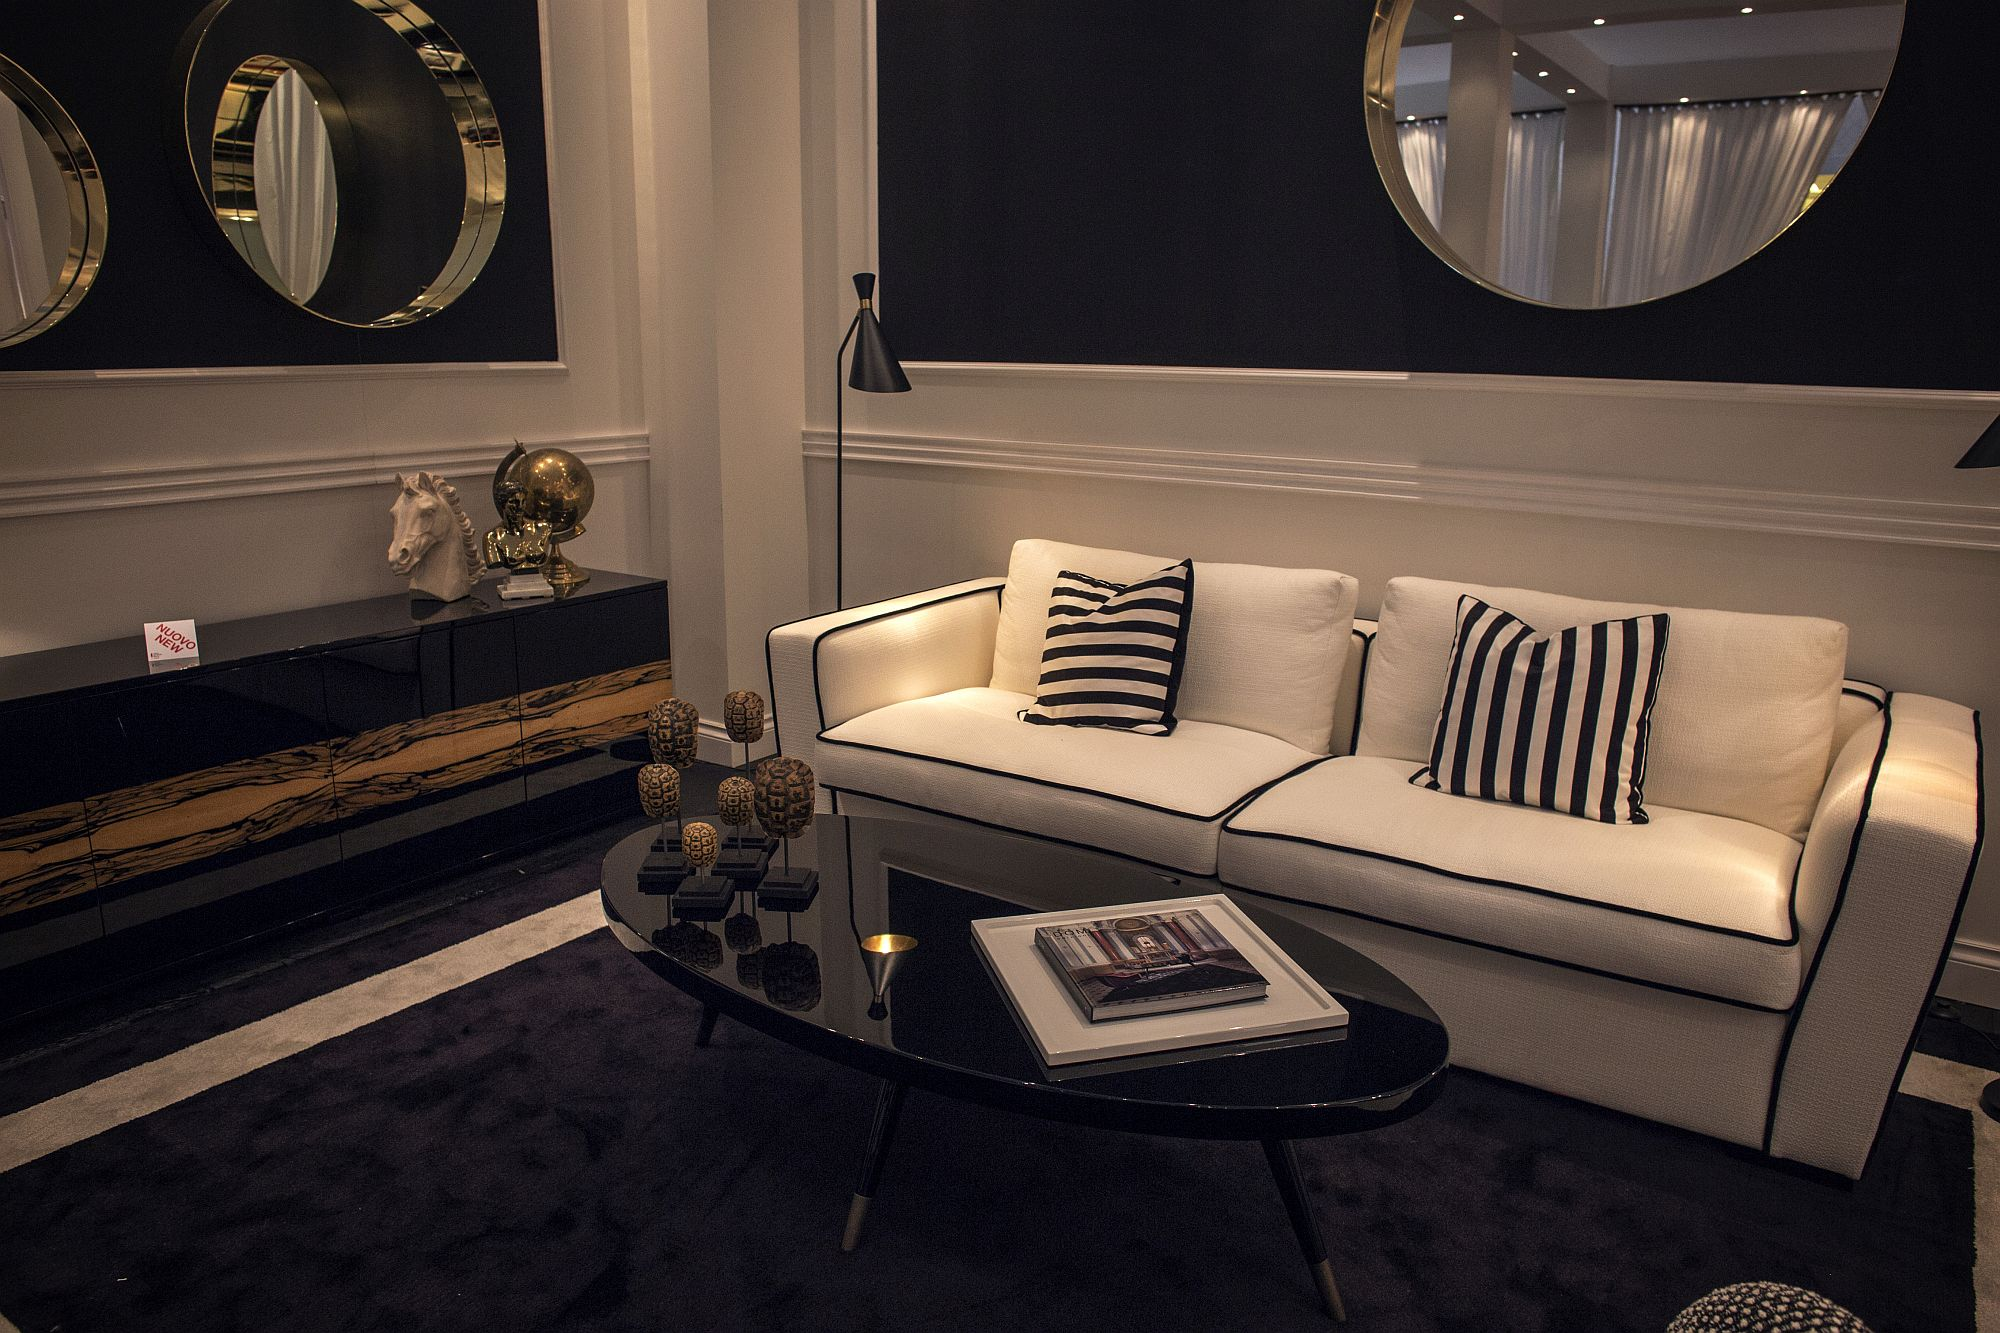 Couch in white next to the black coffee table makes for a dramatic visual